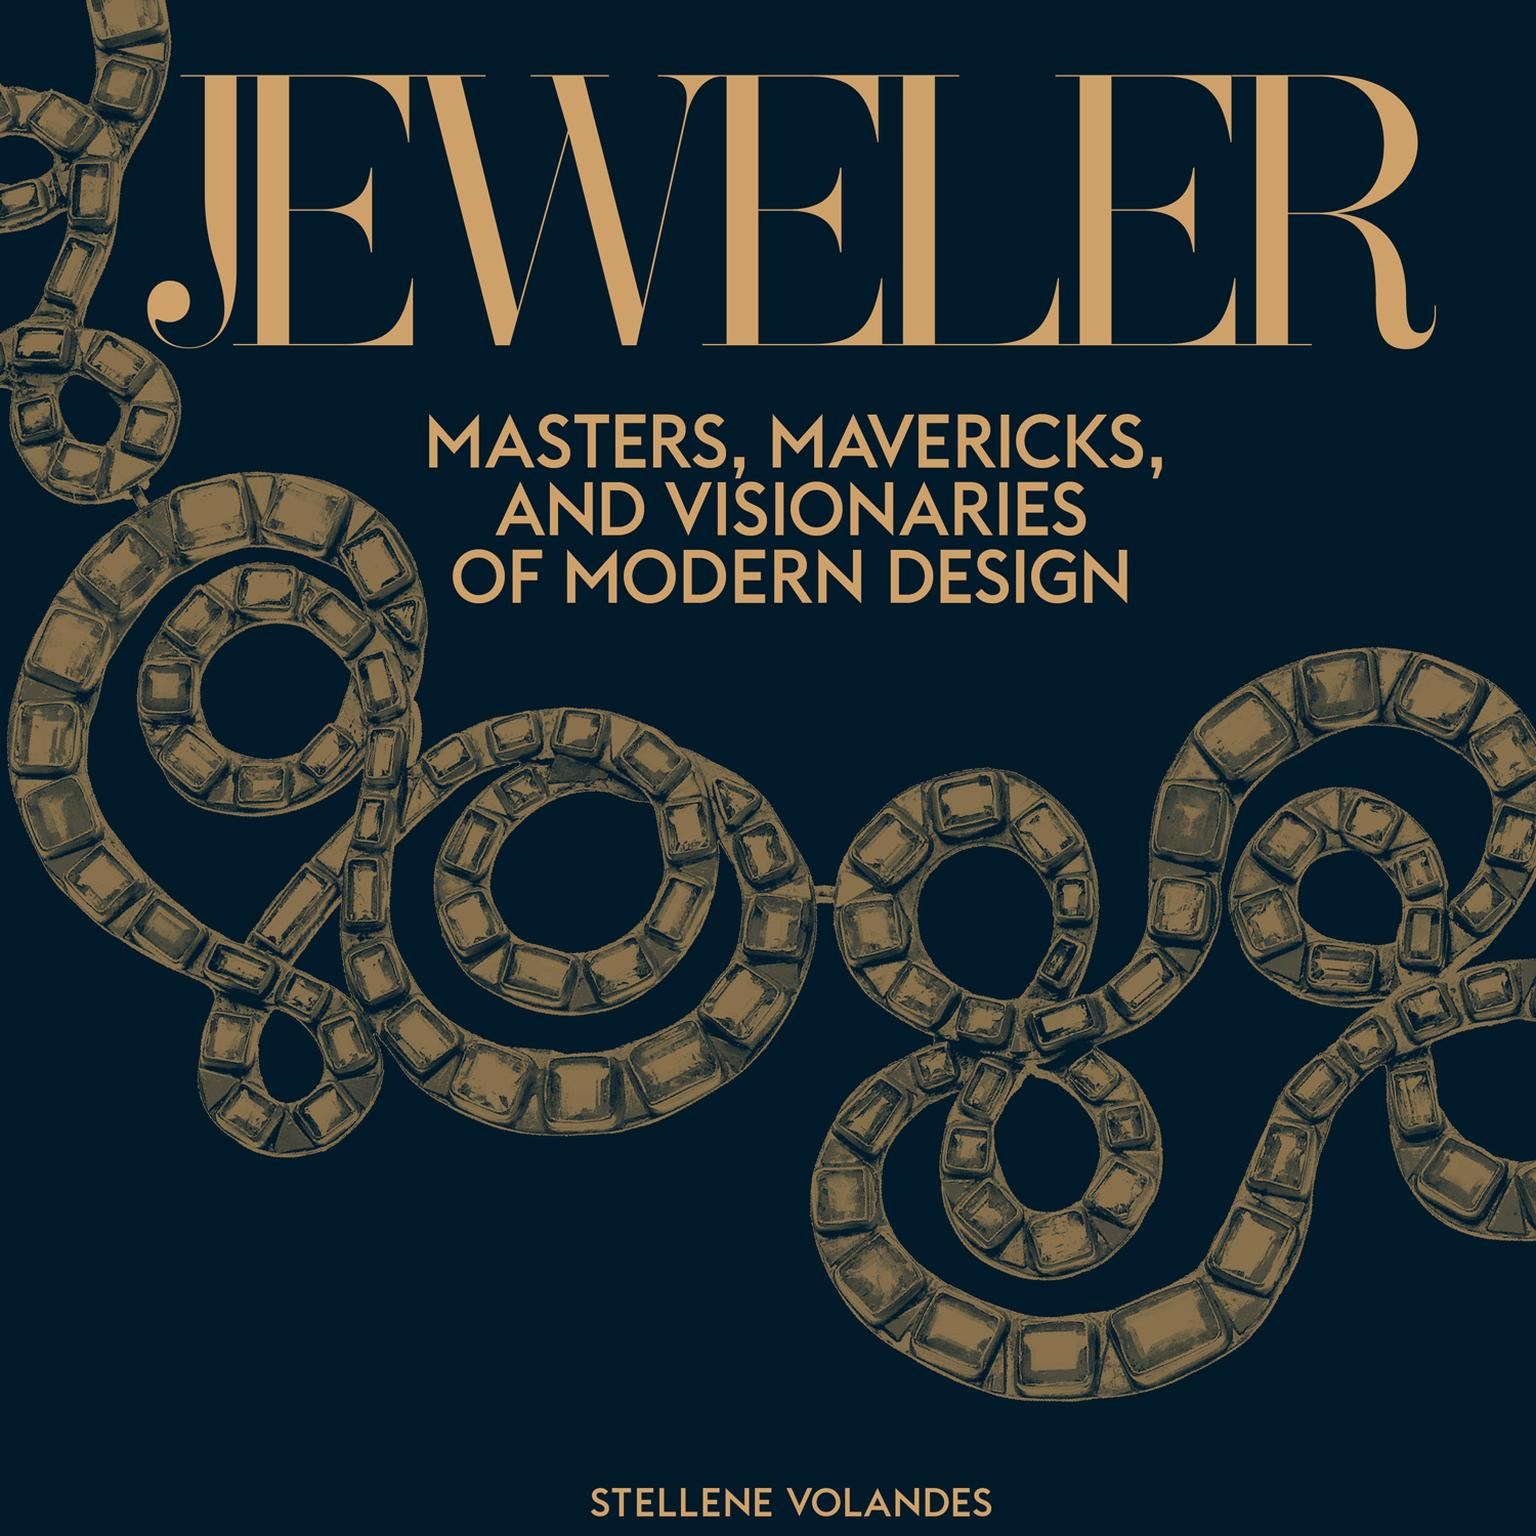 Jeweler - Masters, mavericks and visionaries of modern design